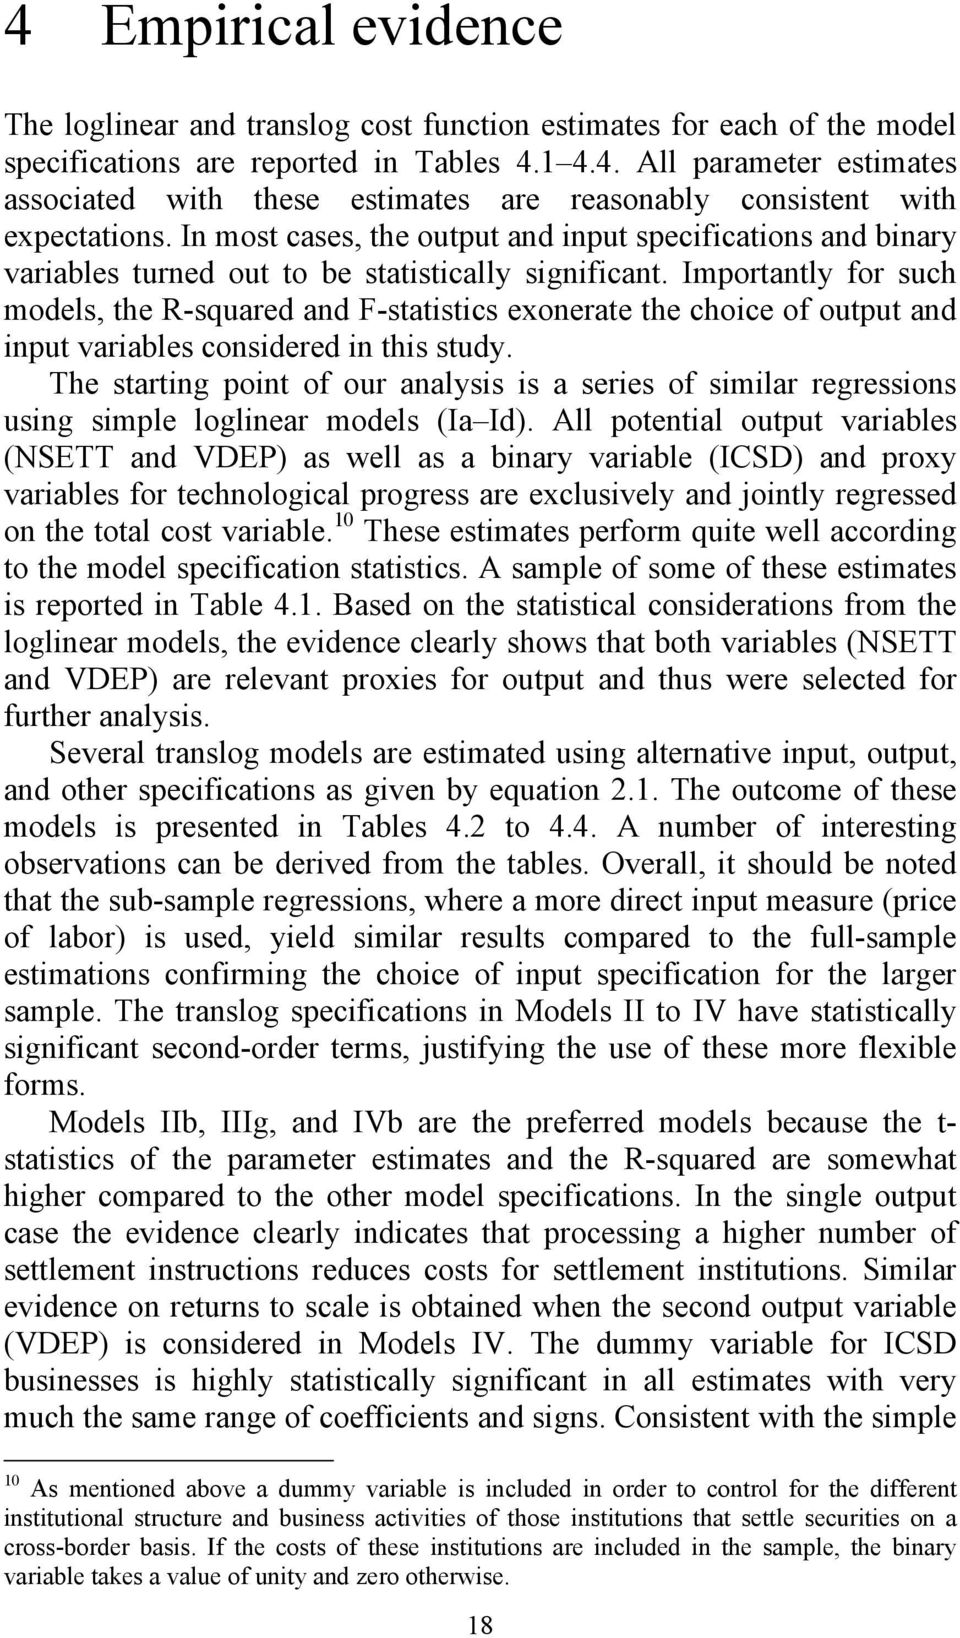 Importantly for such models, the R-squared and F-statistics exonerate the choice of output and input variables considered in this study.